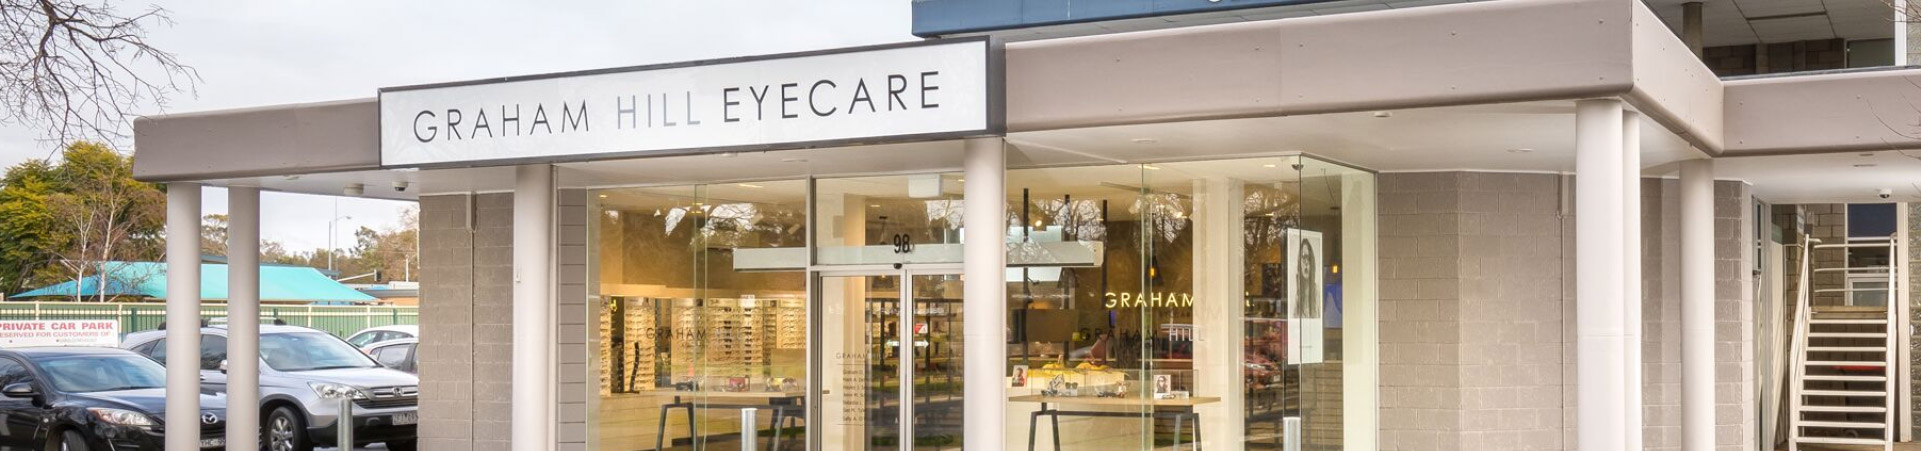 Graham Hill Eyecare